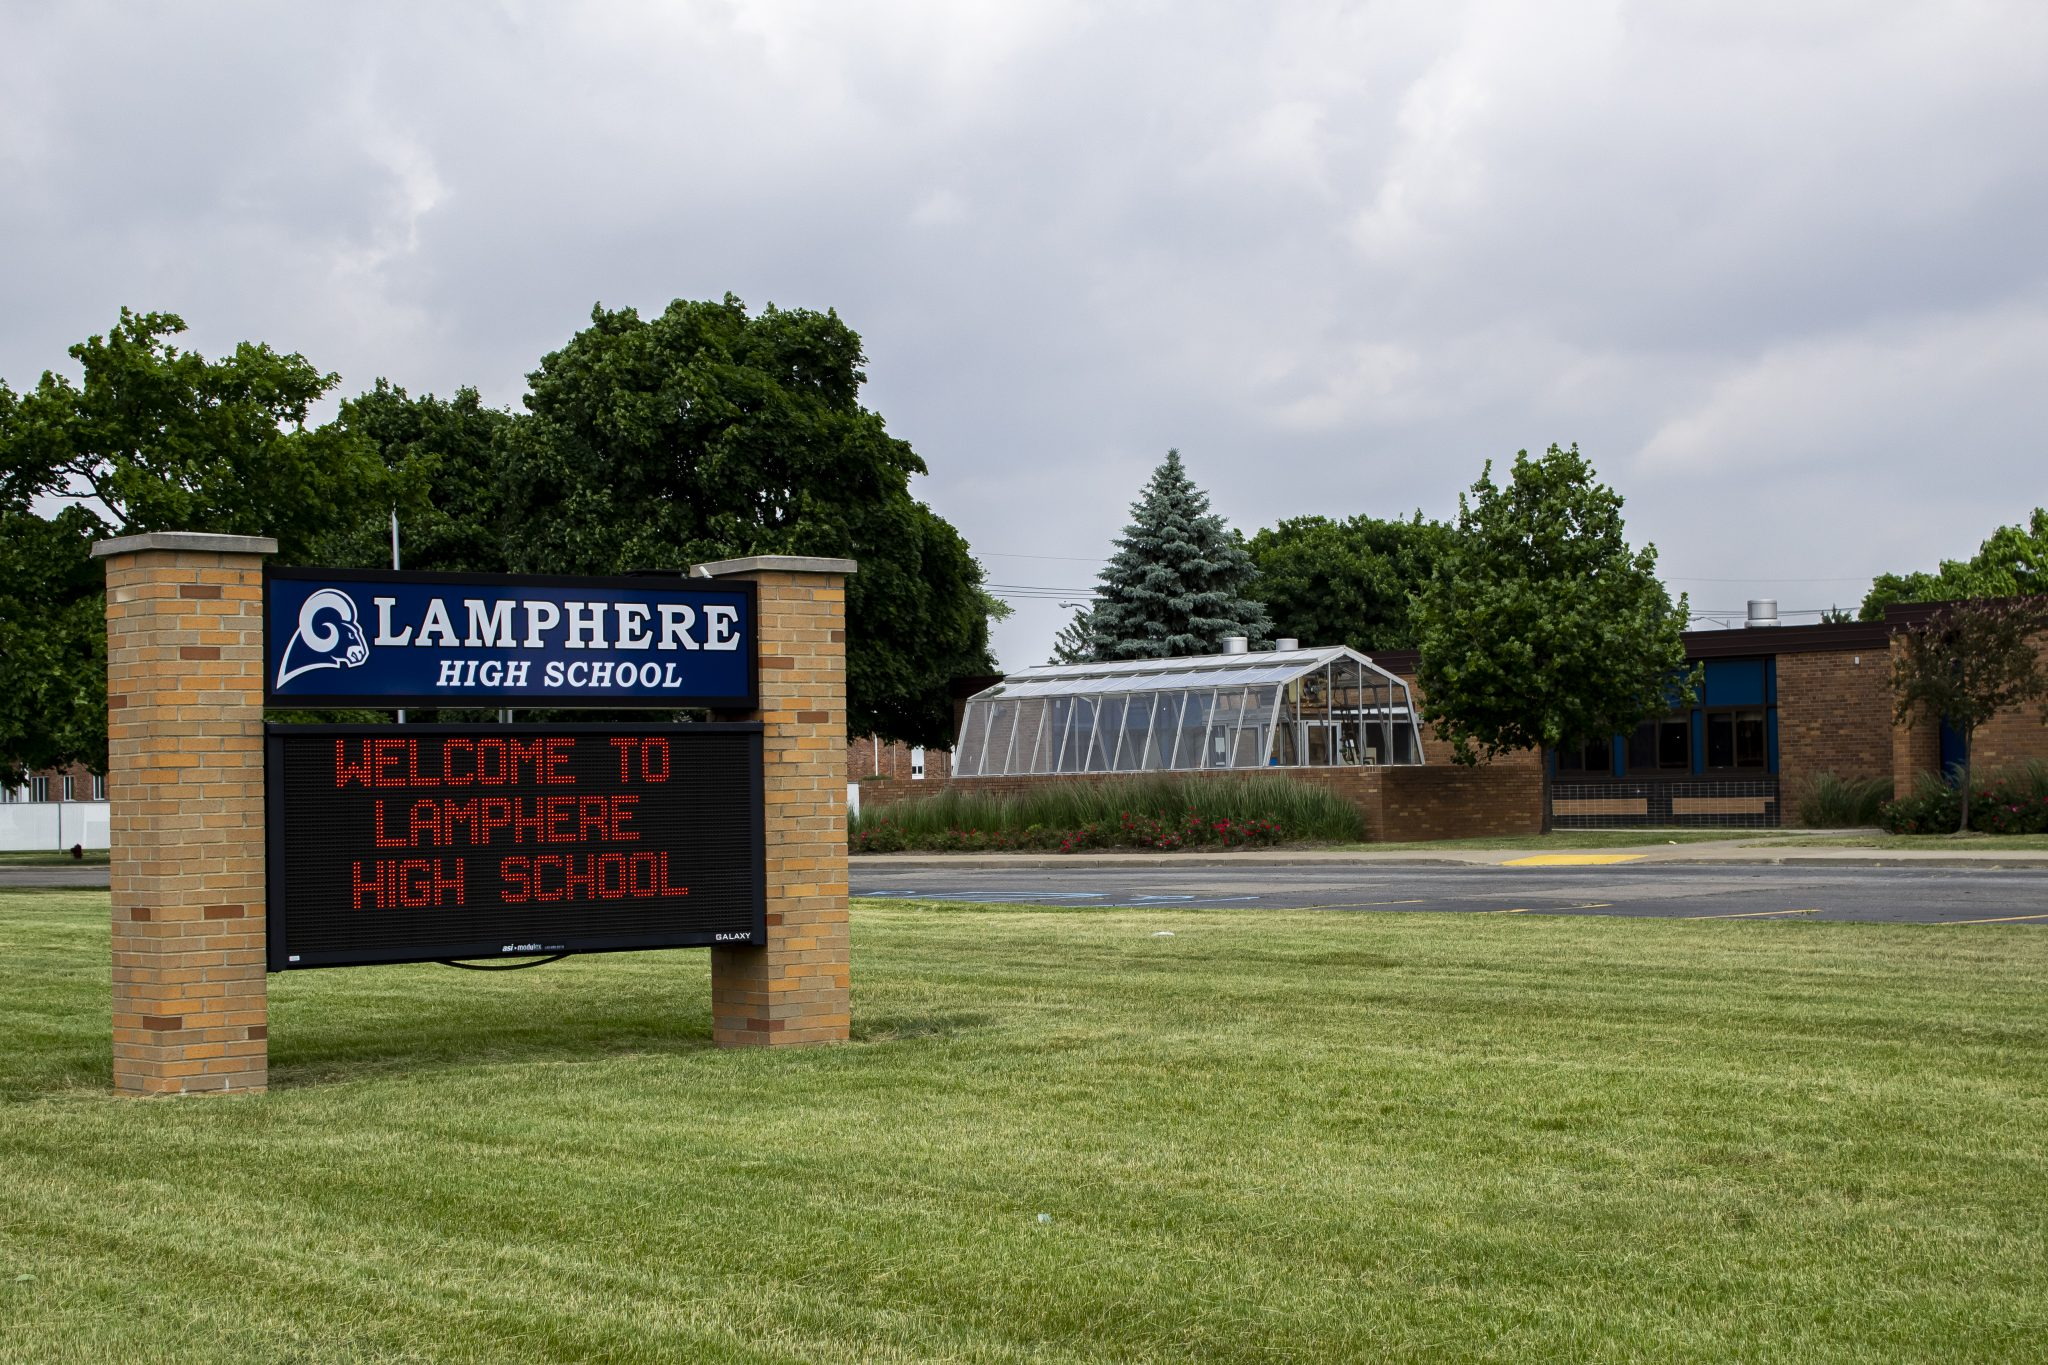 RESUME SCHOOL LAMPHERE SCHOOLS IS ONE DISTRICT PREPARING TO REOPEN WITH MULTIPLE PLANS. PHOTO JOHN BOZICK